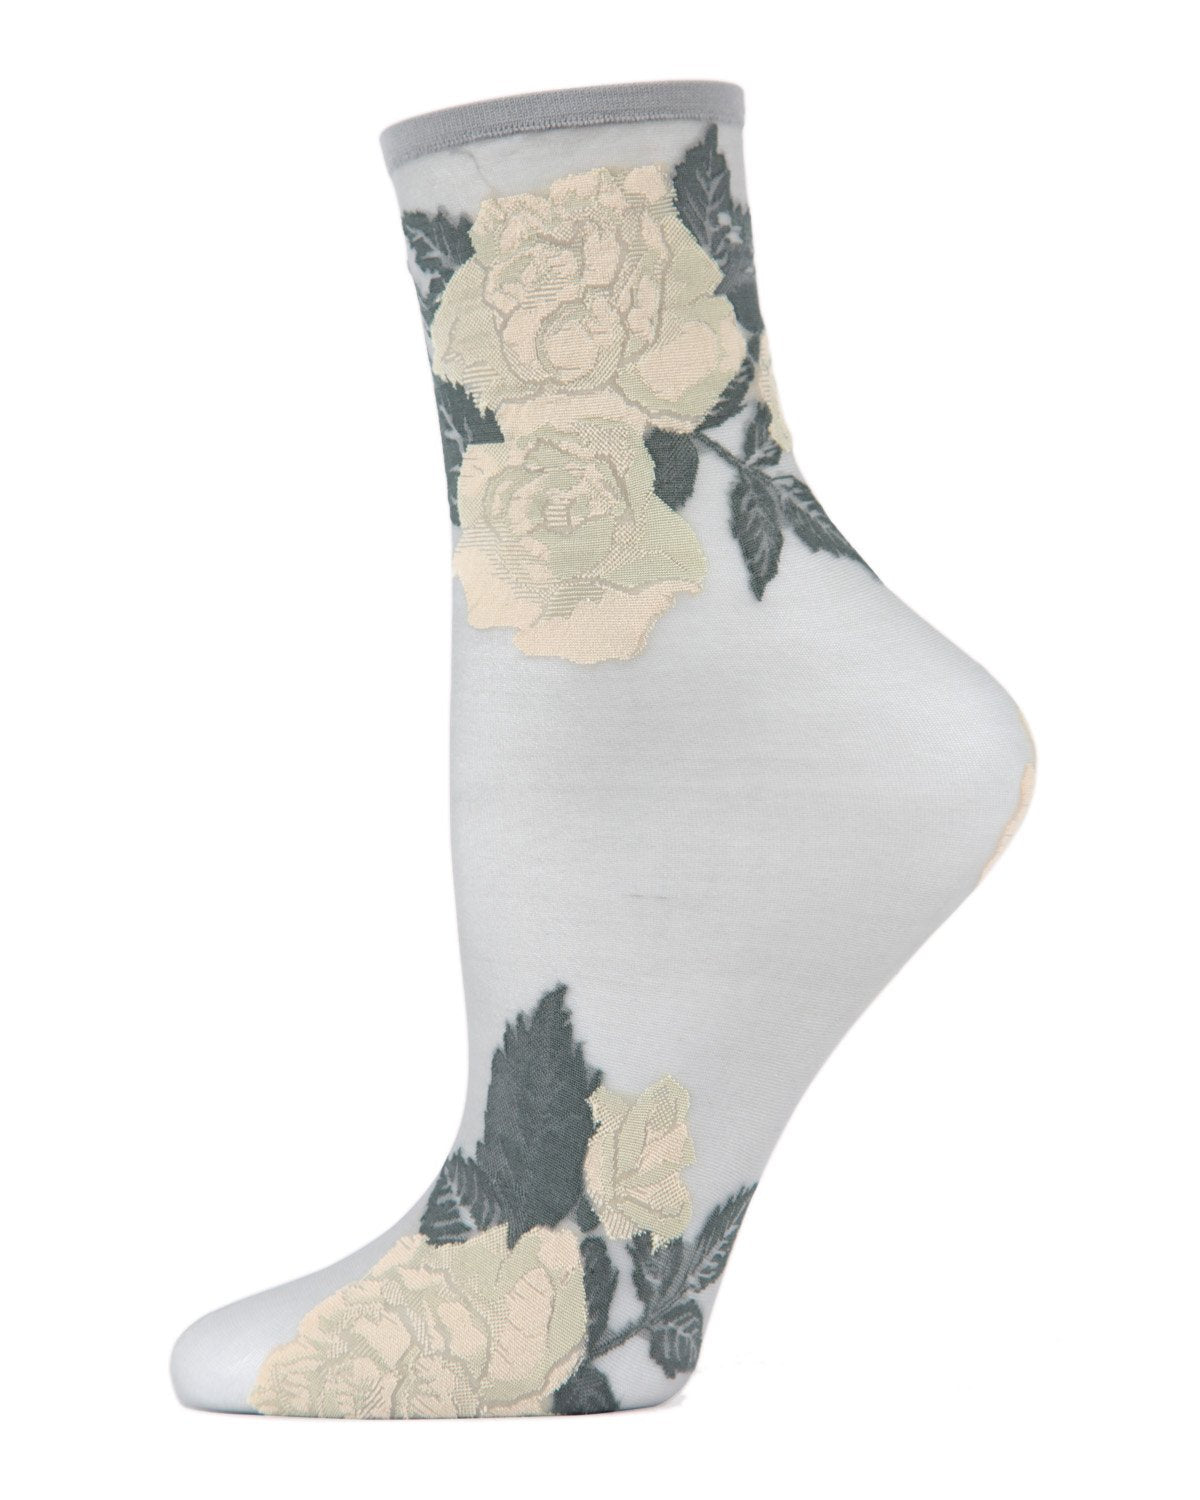 Sheer Beauty Rose Garden See-through Ankle Socks